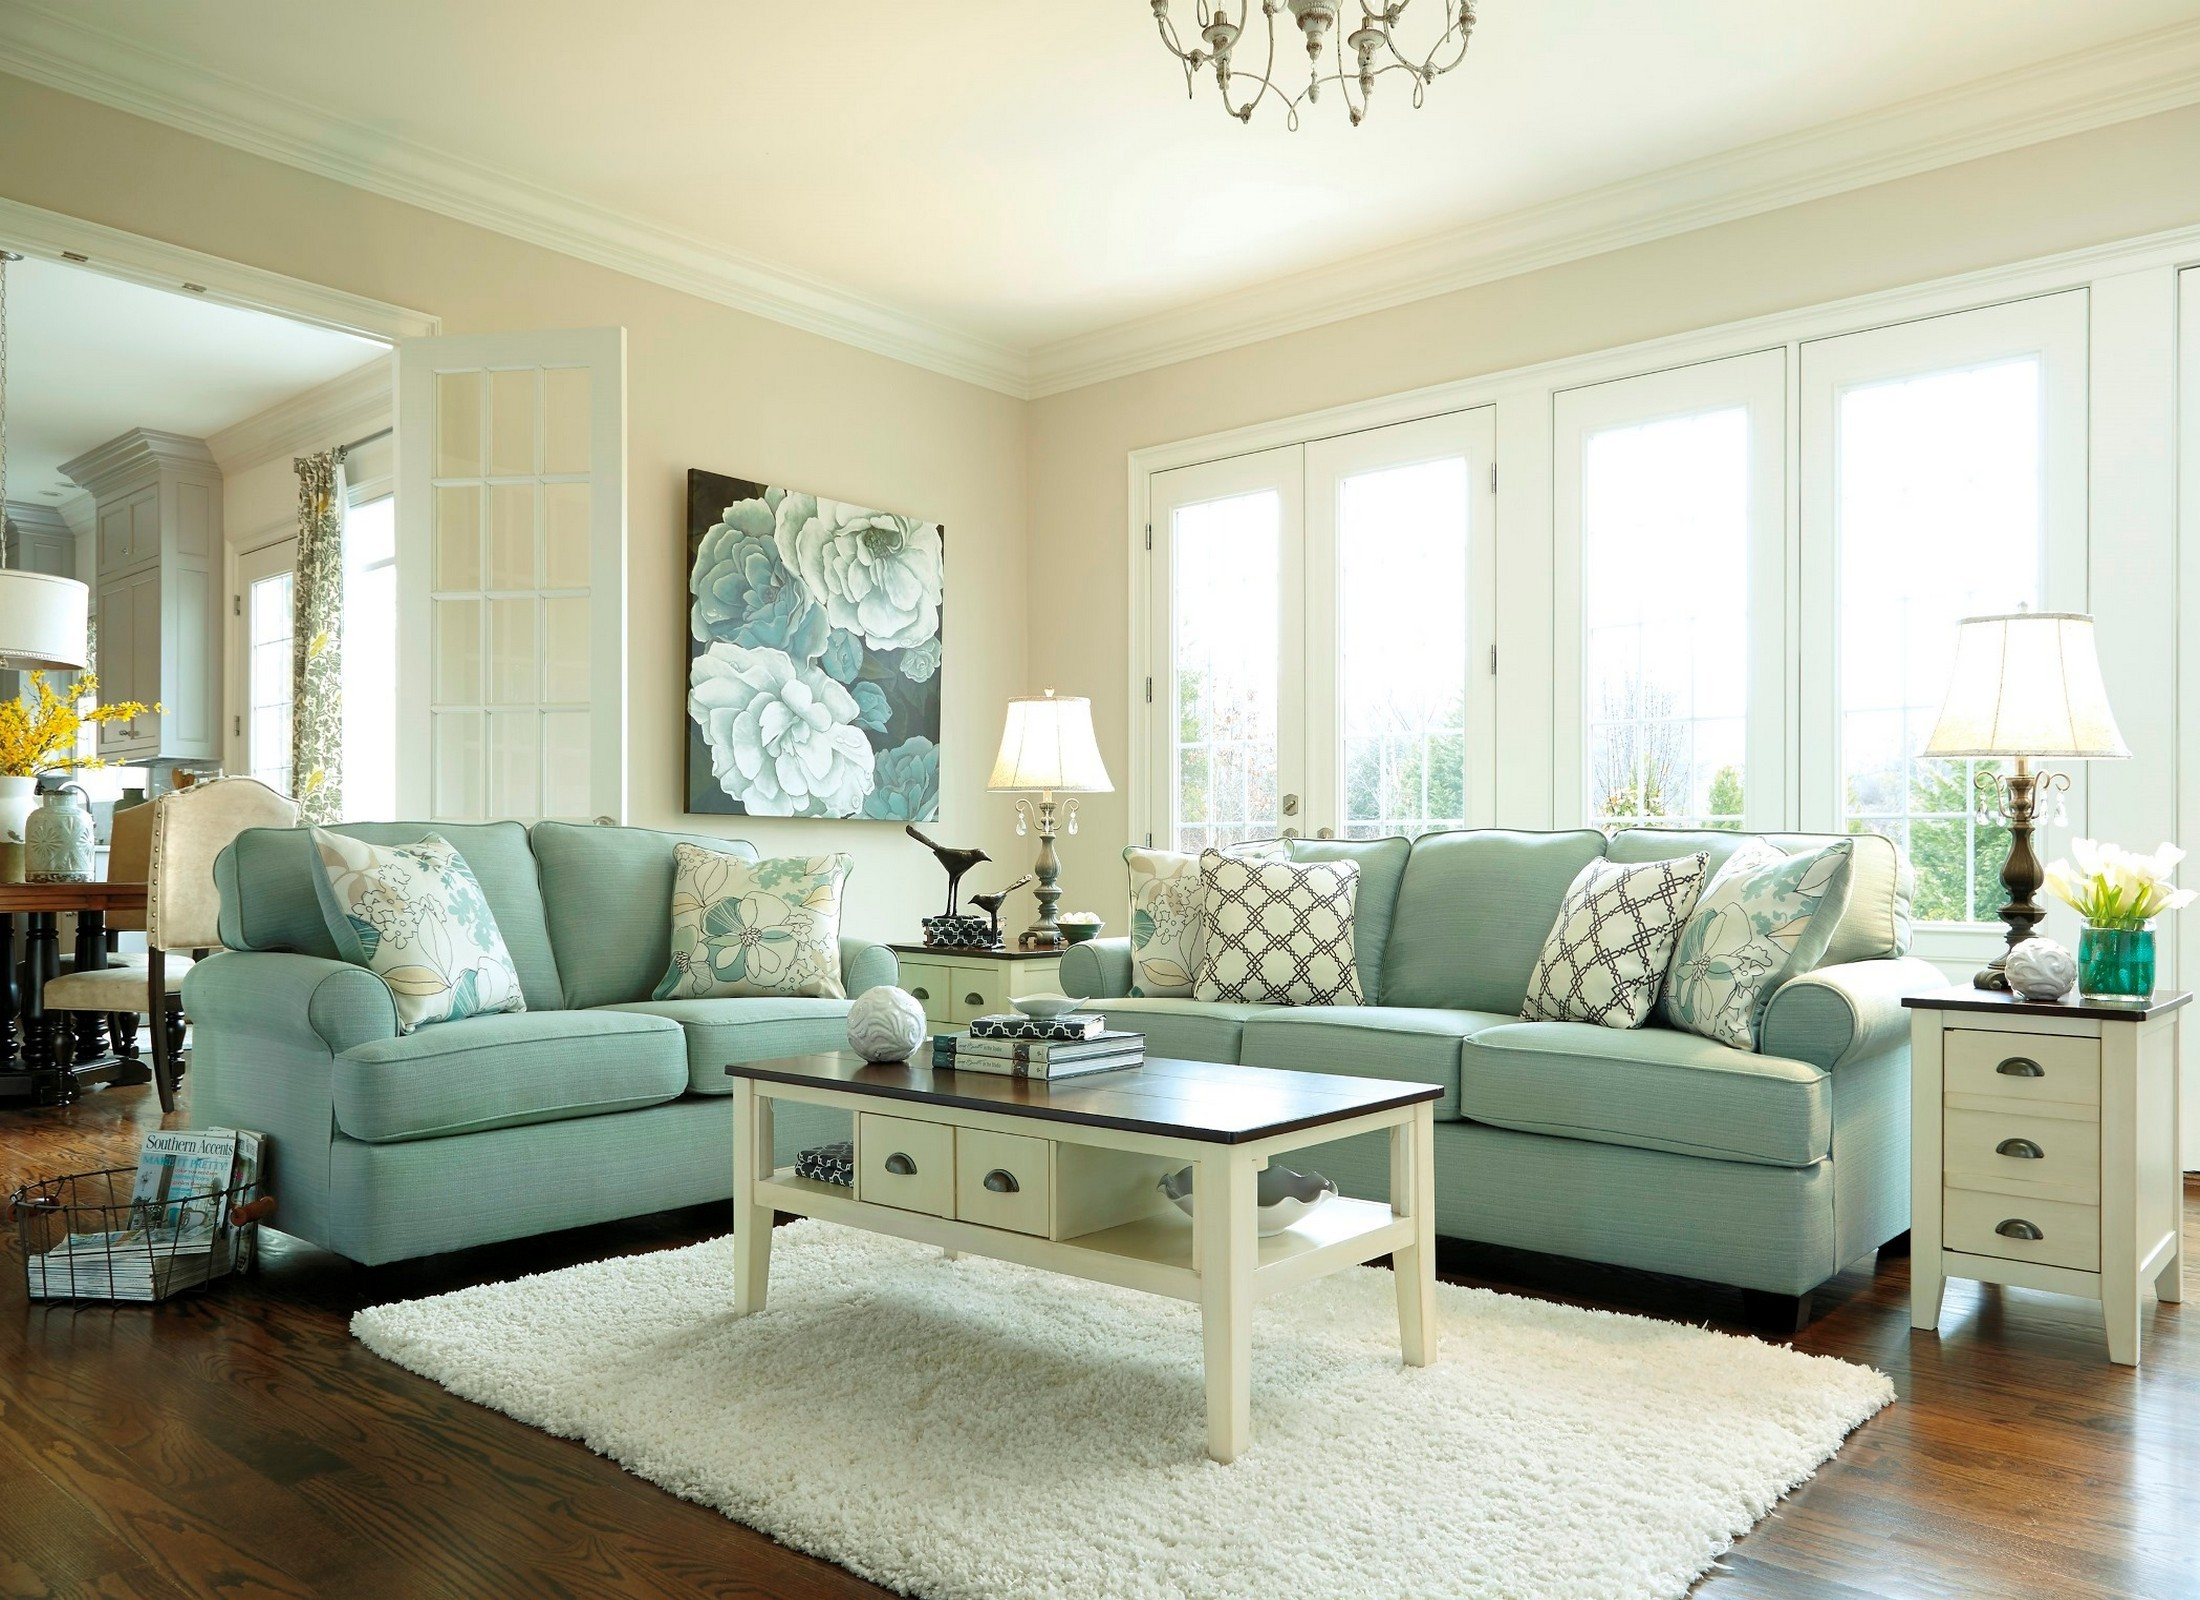 Daystar Living Room Set From Ashley (28200-38-35)